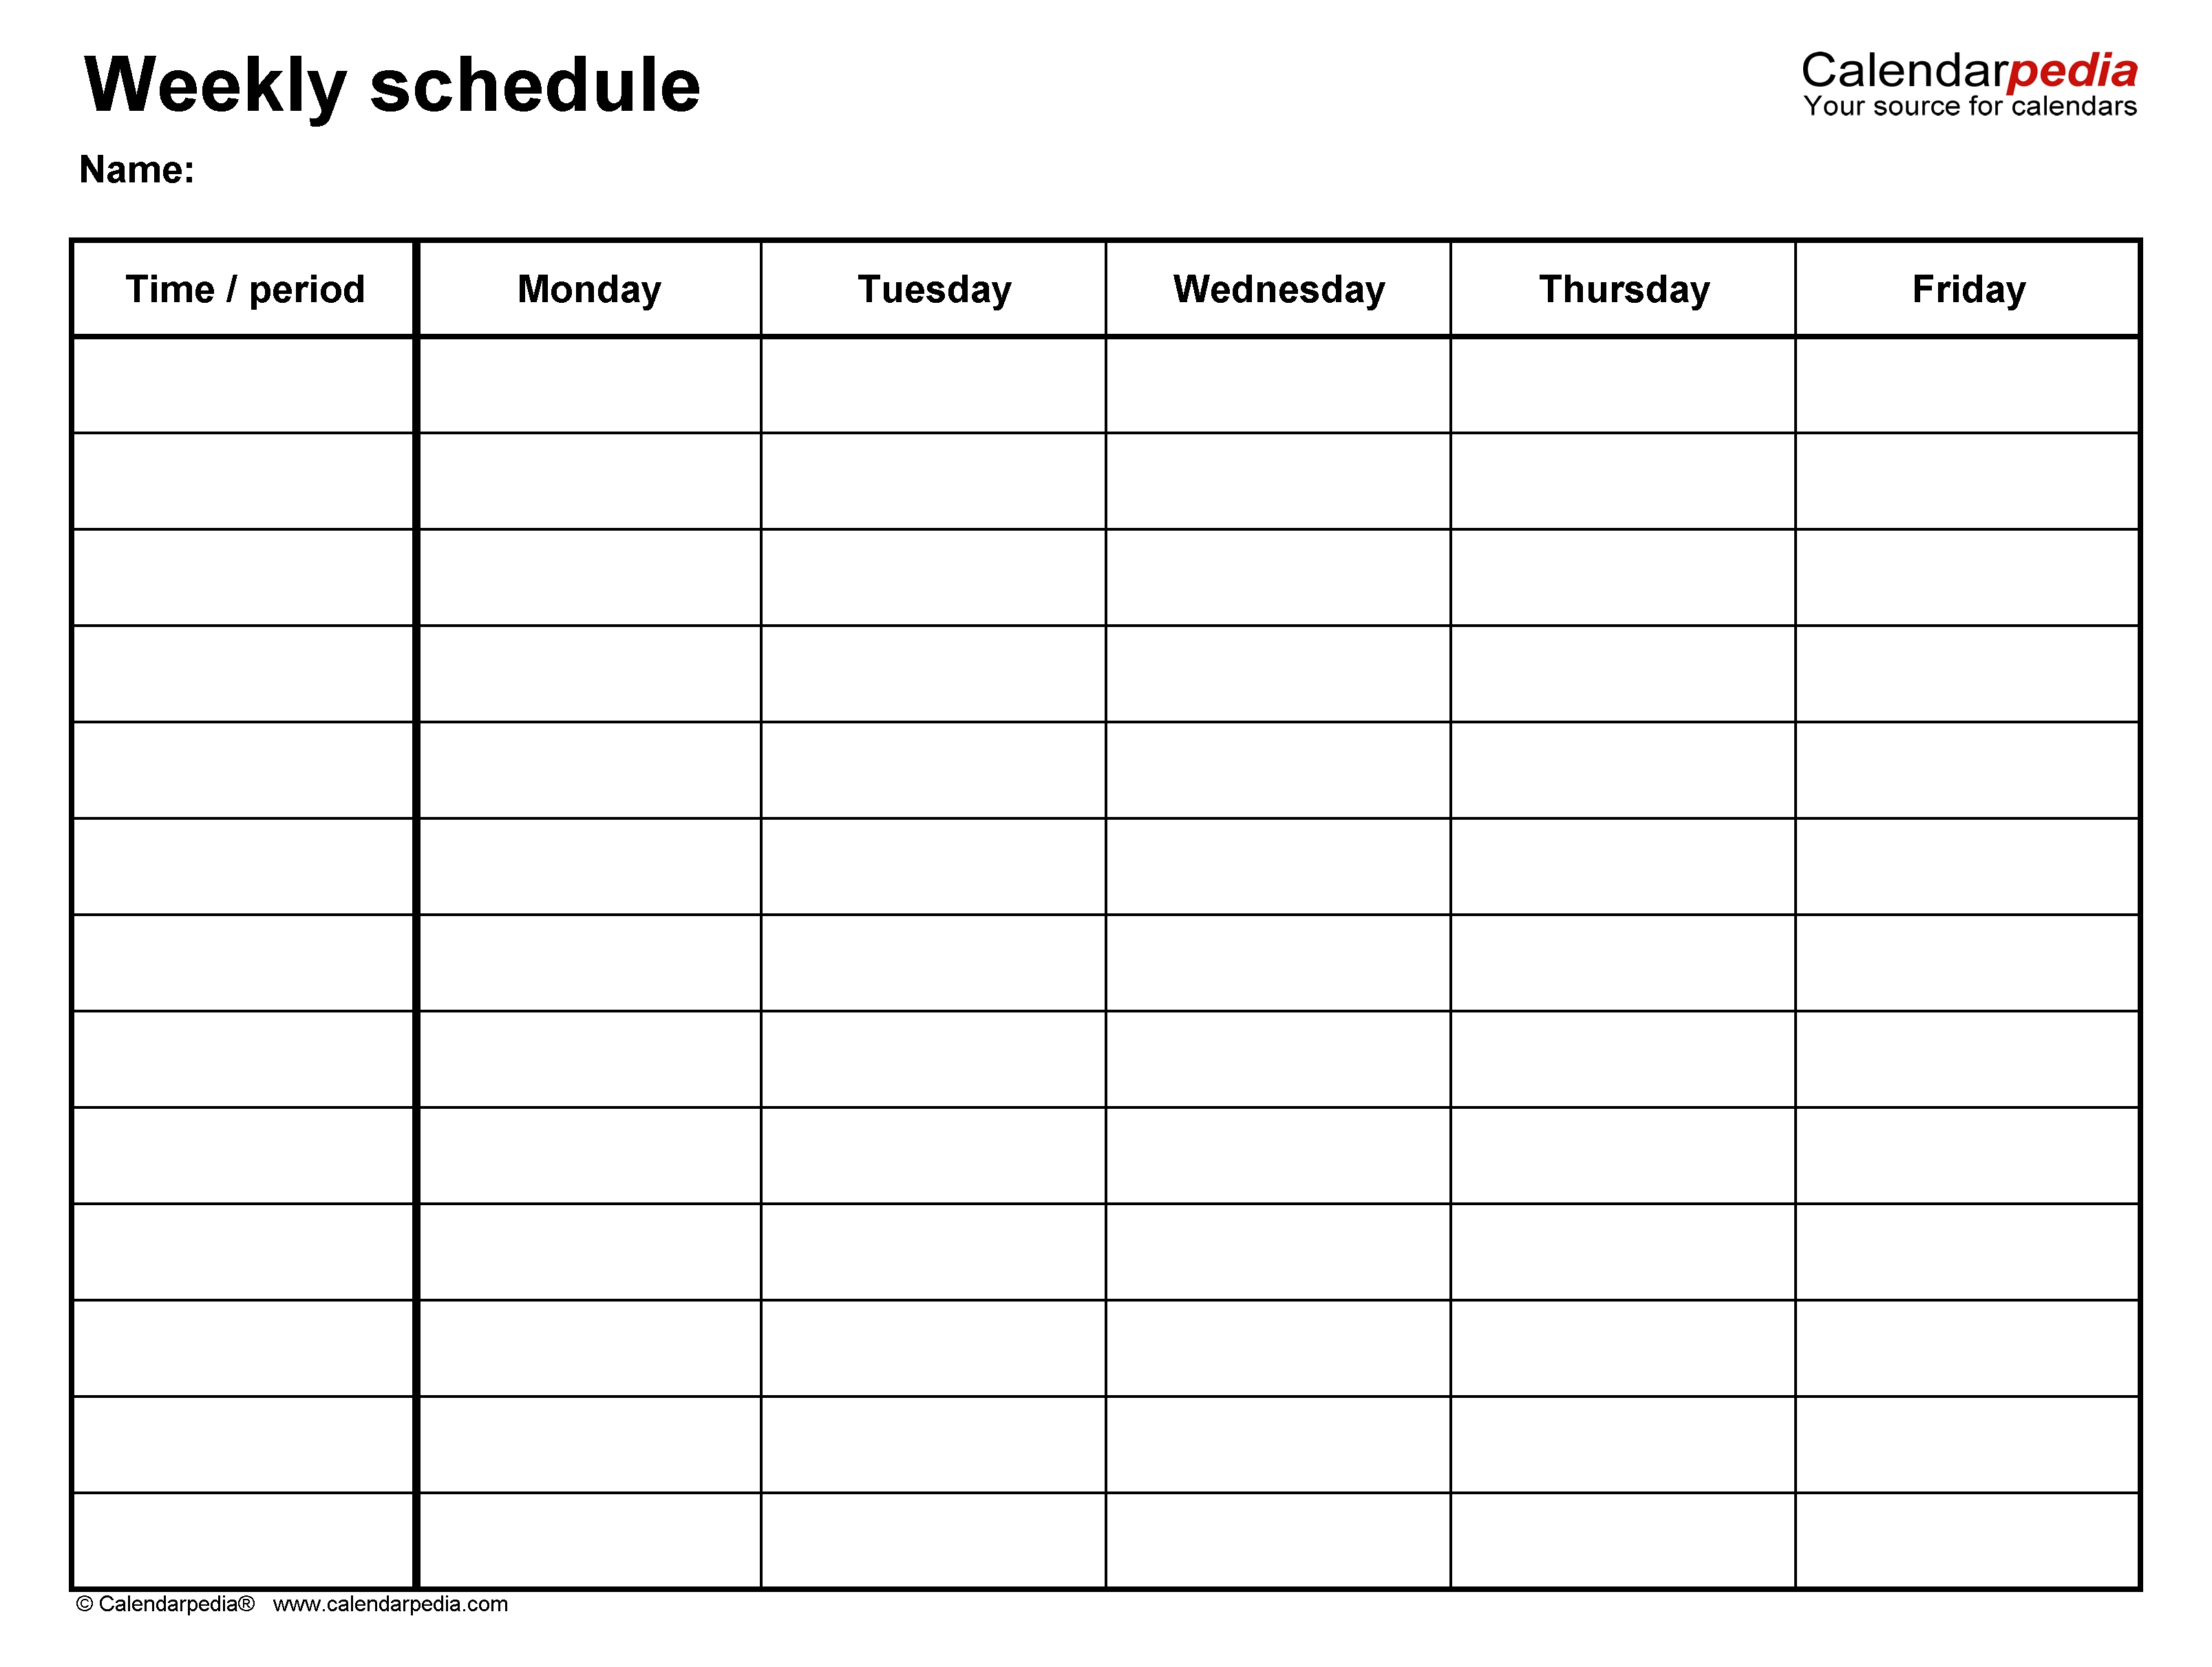 Free Weekly Schedule Templates For Excel - 18 Templates  Business Monday To Friday Daily Planner